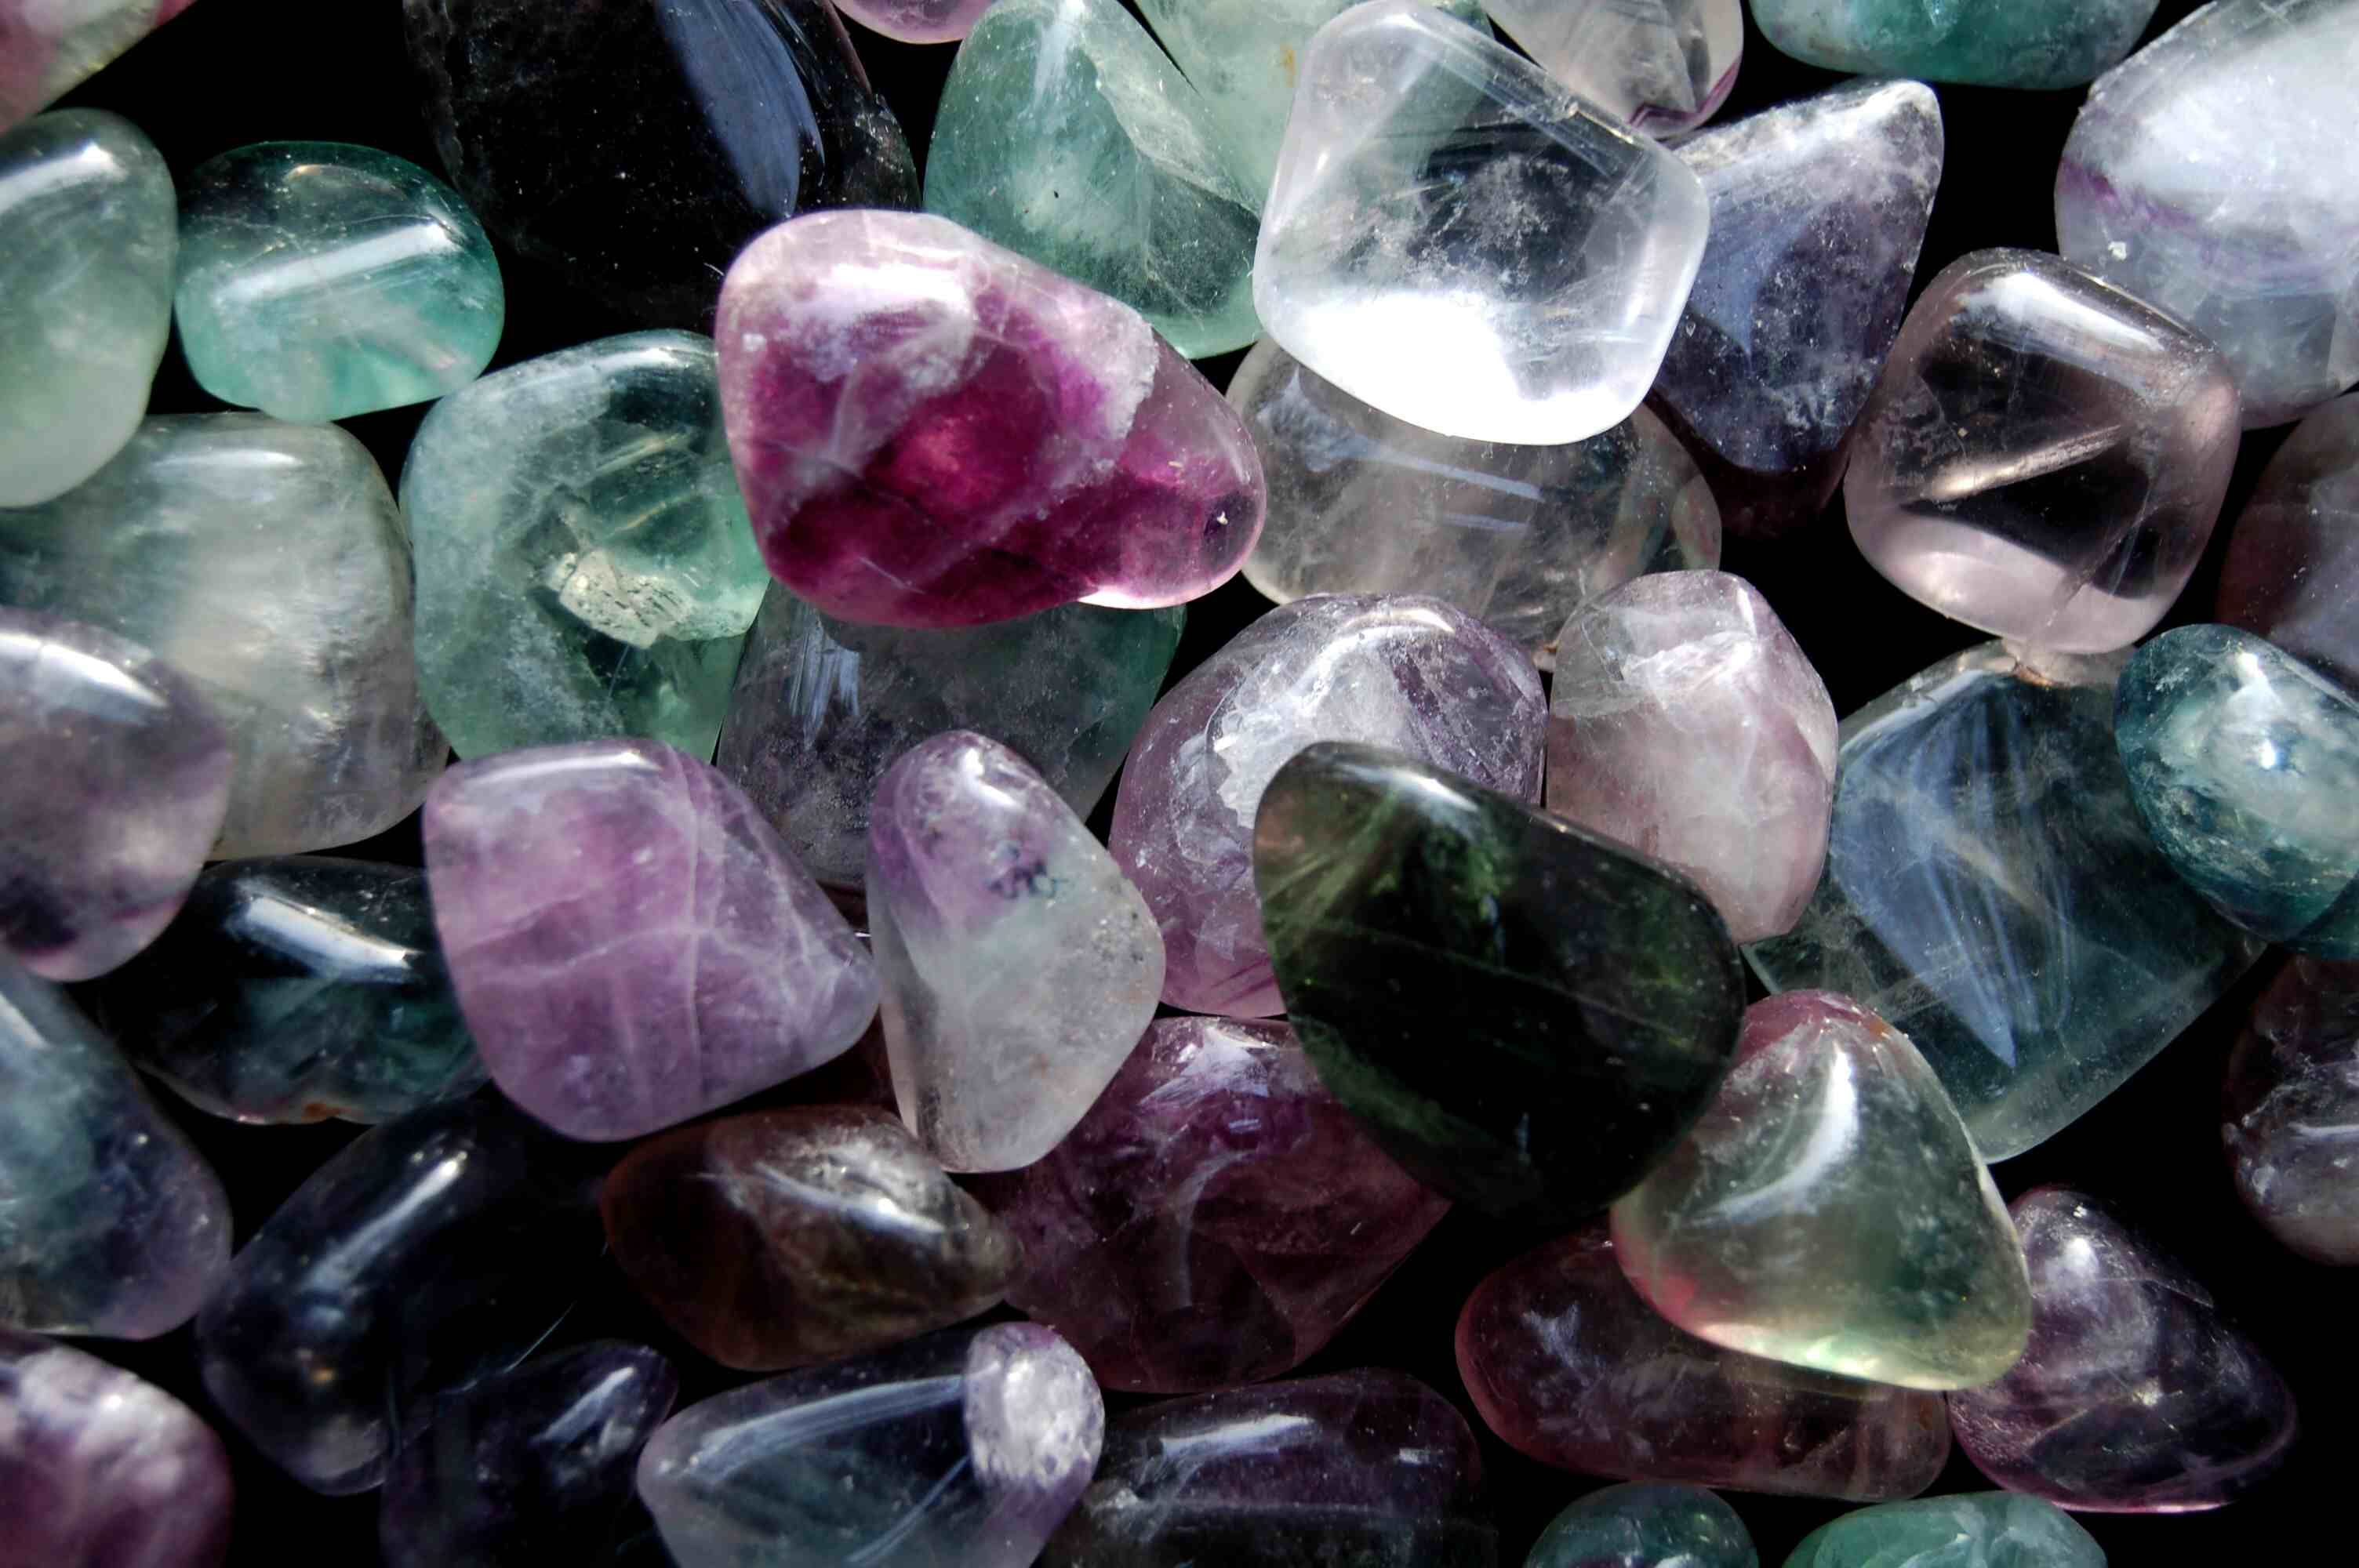 How To Clean Cleanse Charge Activate And Program Your Crystal